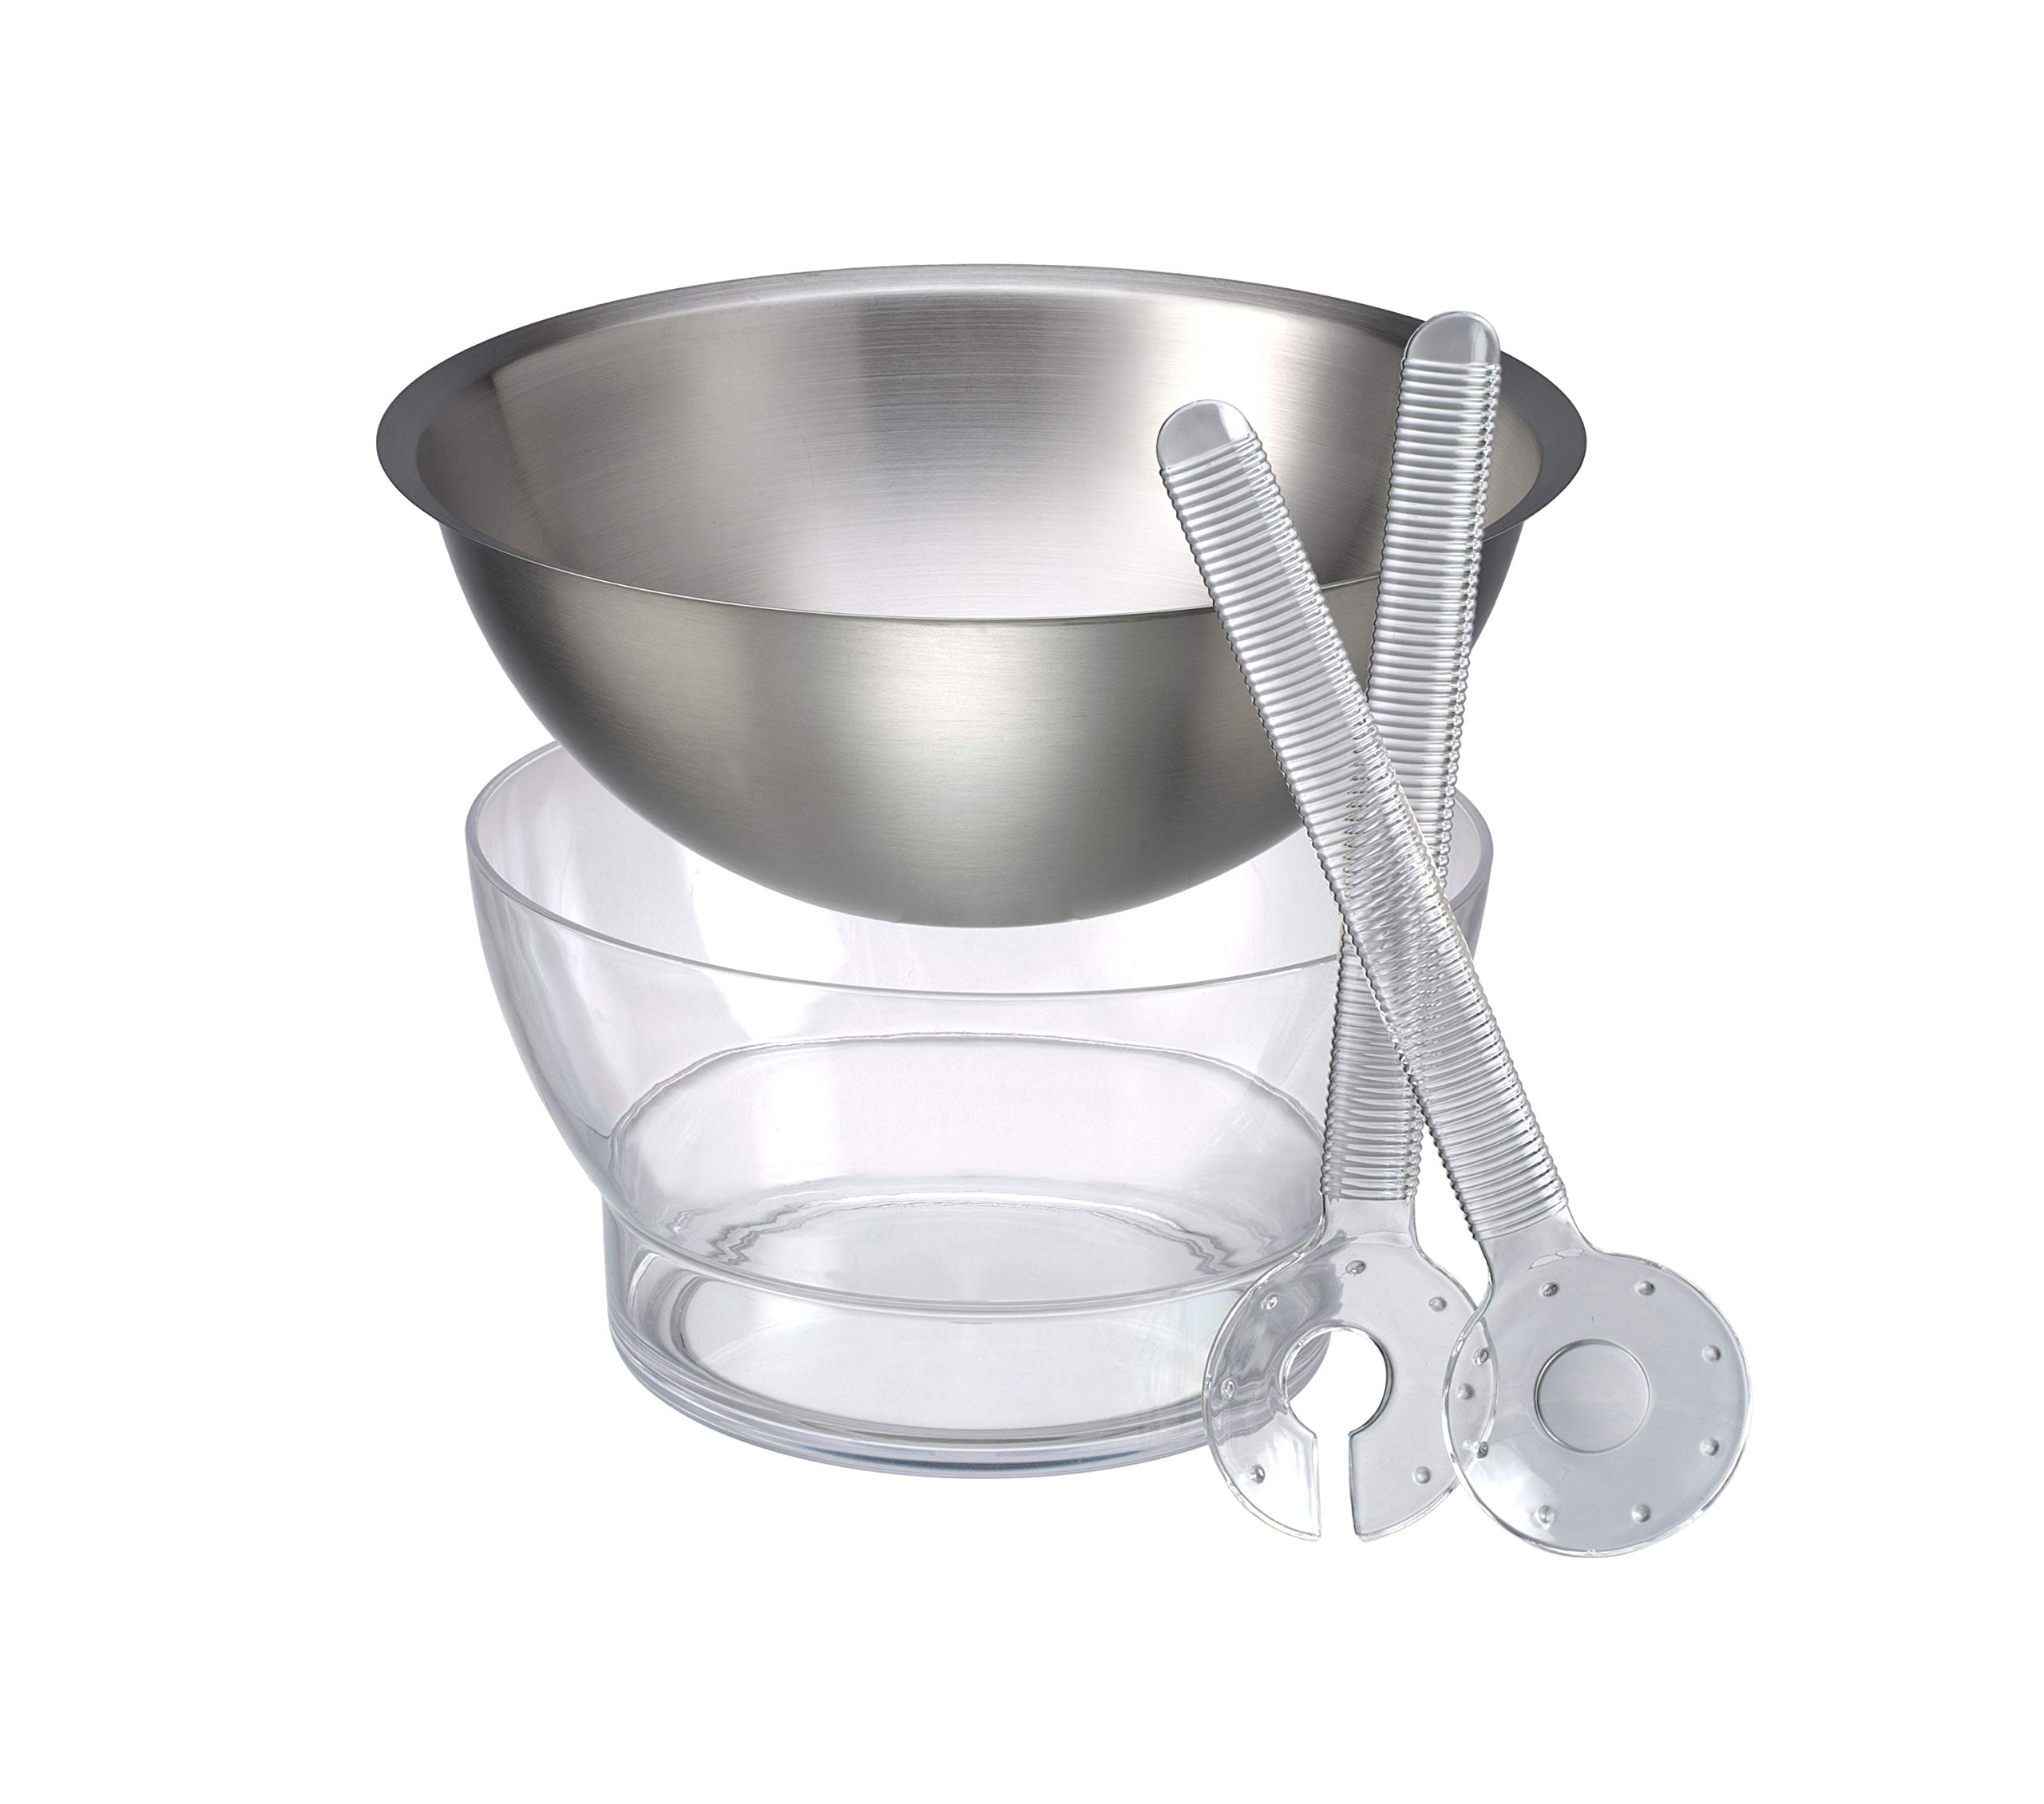 Prodyne CB-2 Ice Spinning Salad Bowl, One Size, Clear